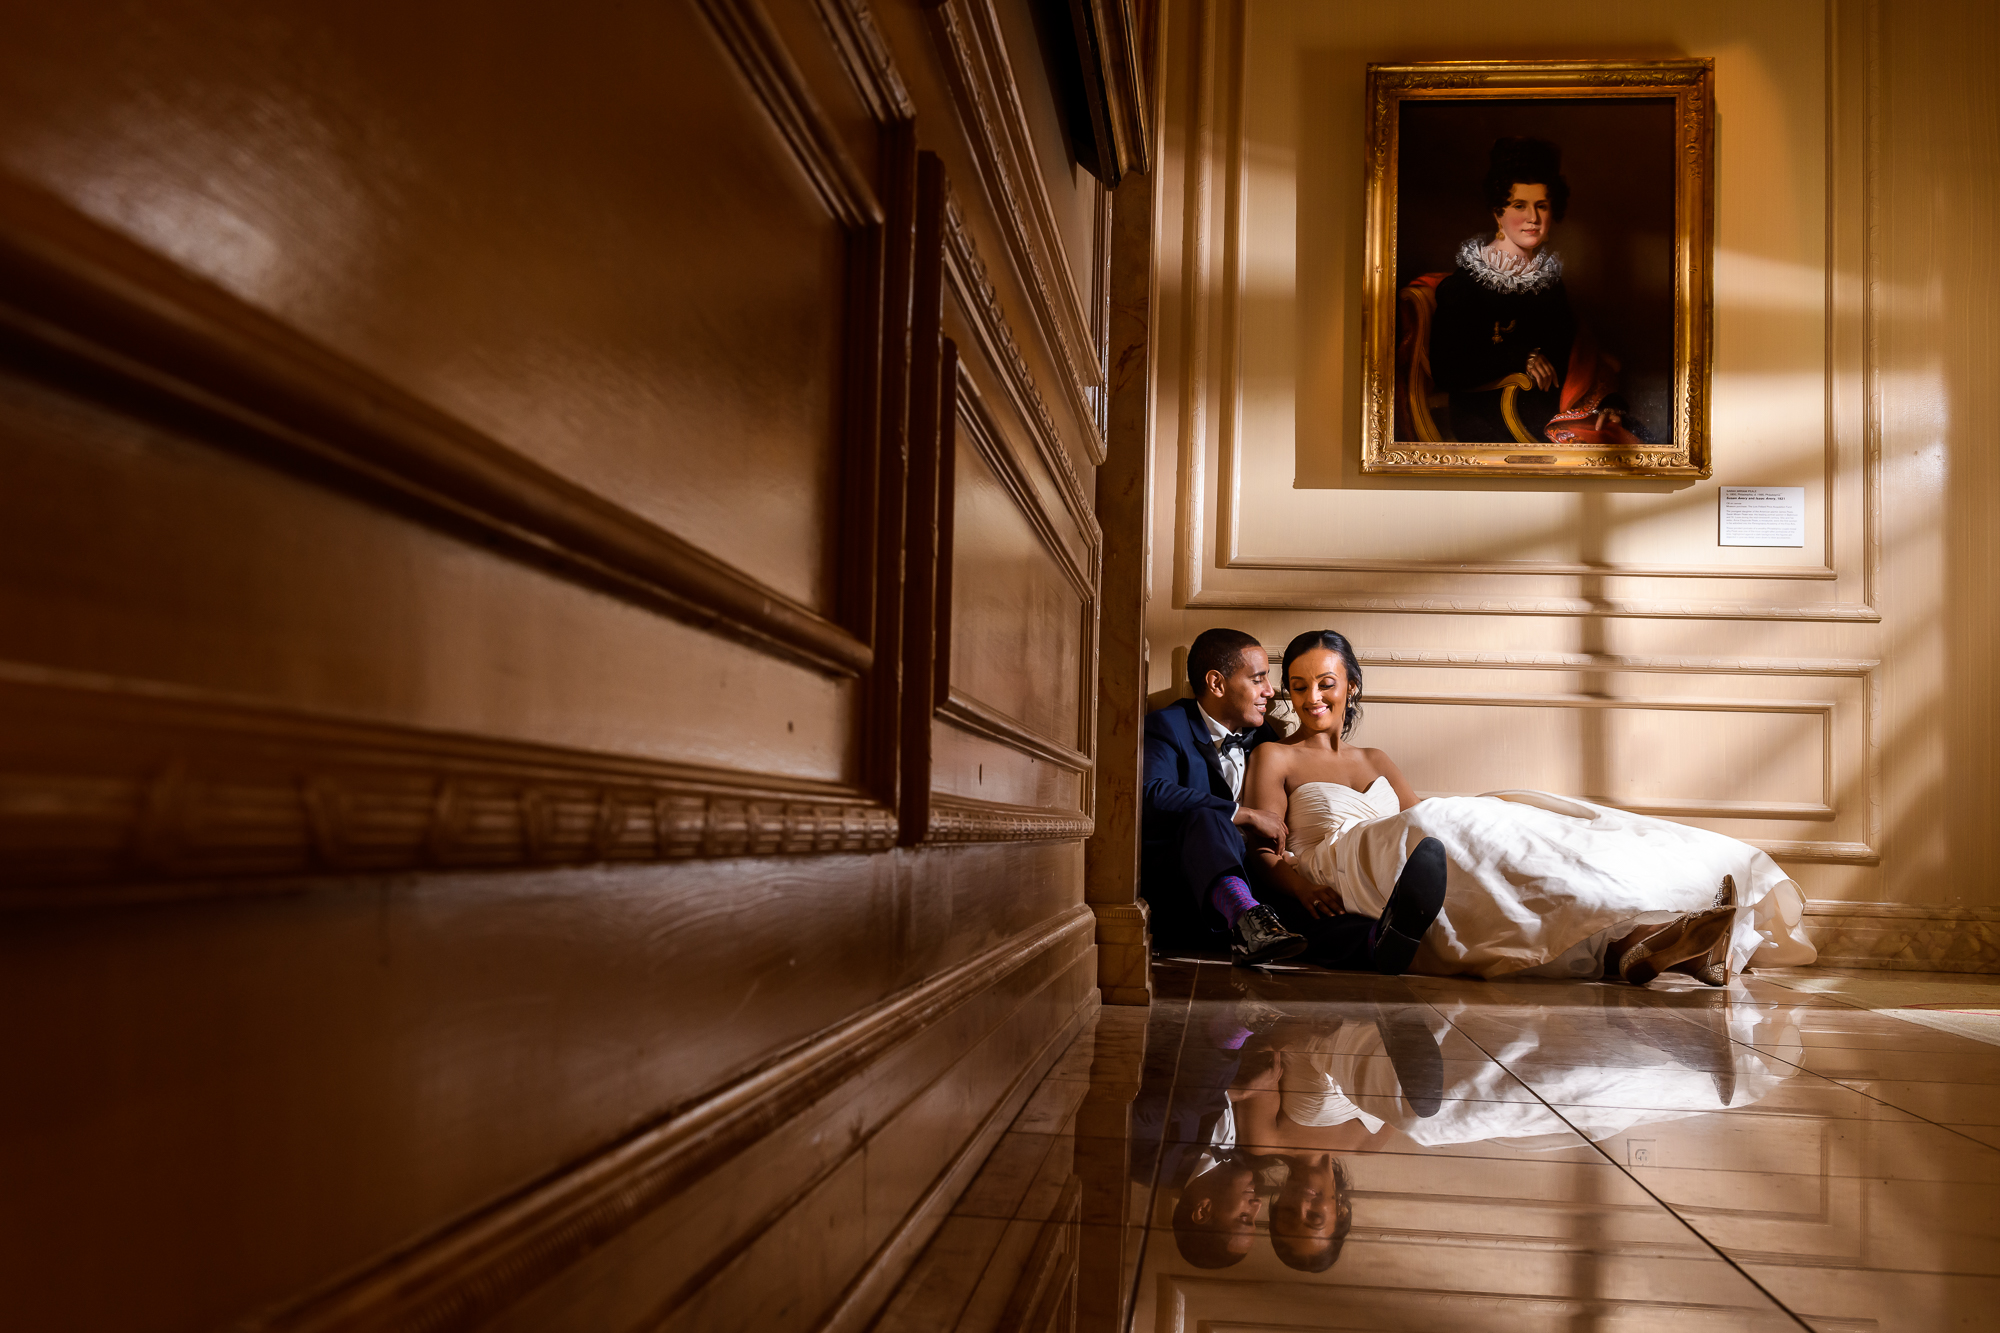 Bride and groom snuggling on marble floor - photo by Christopher Jason Studios